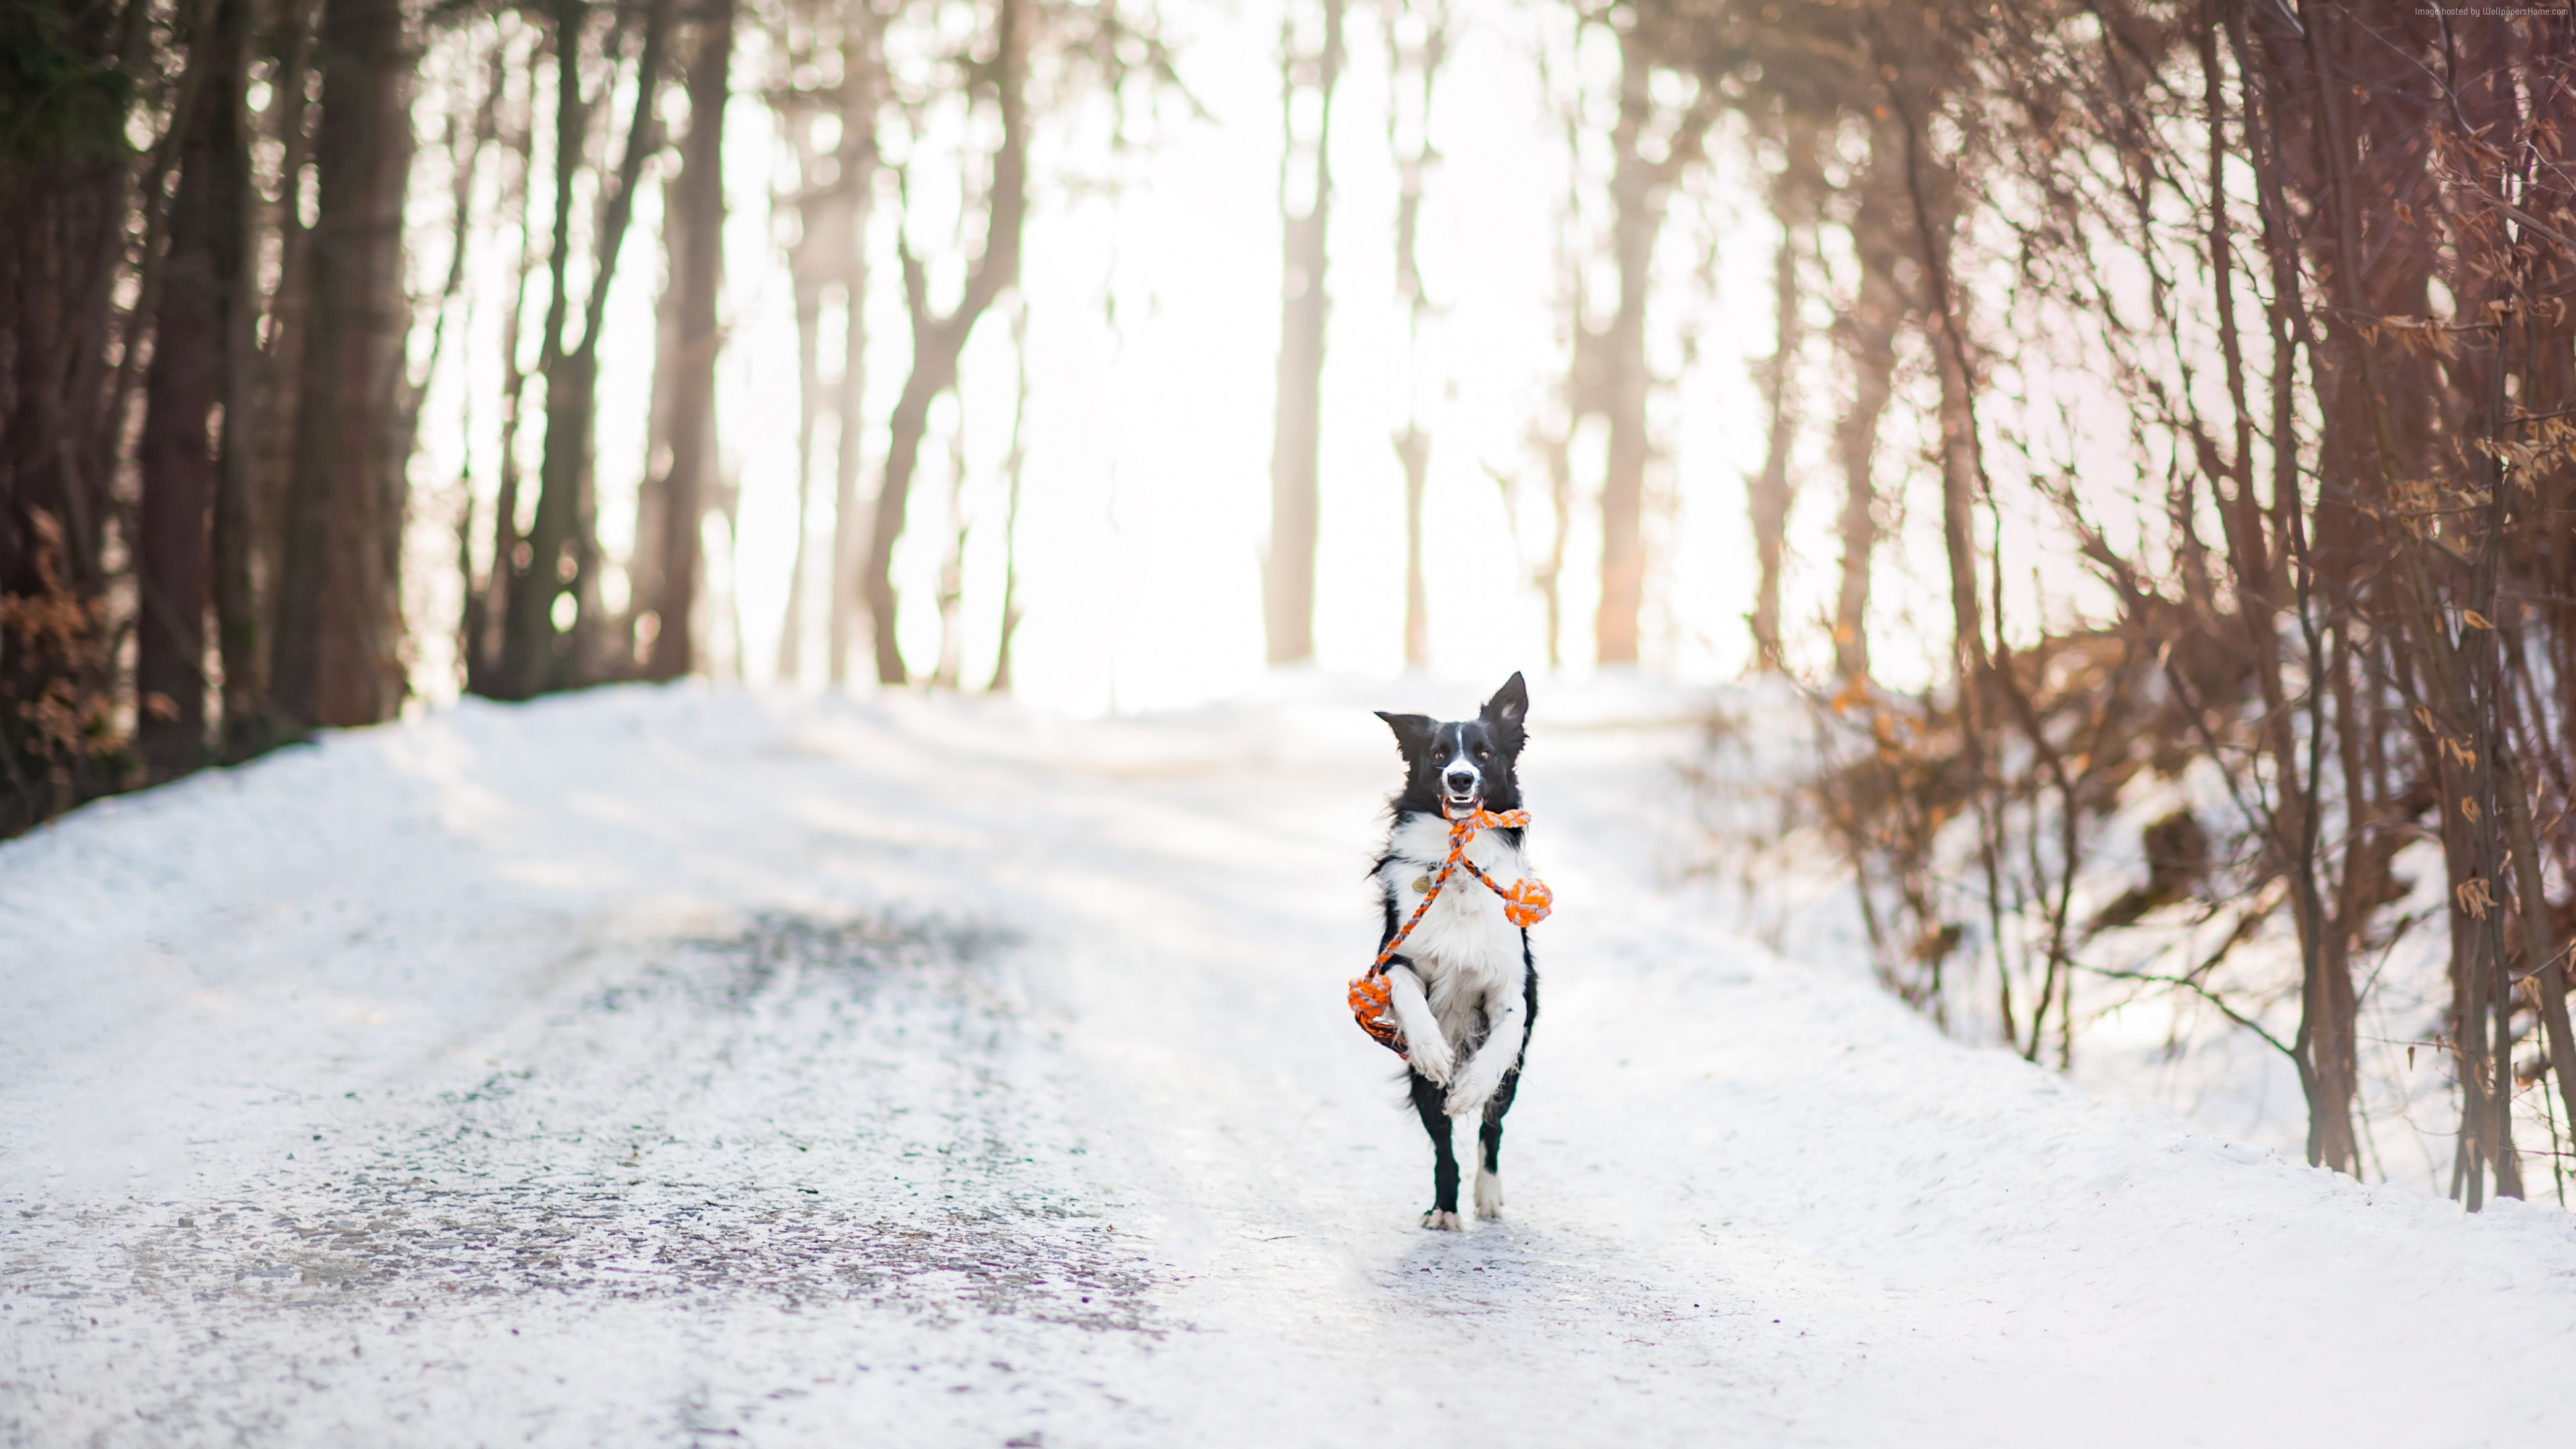 Stock Images dog, cute animals, winter, snow, trees, 4k, Stock Images